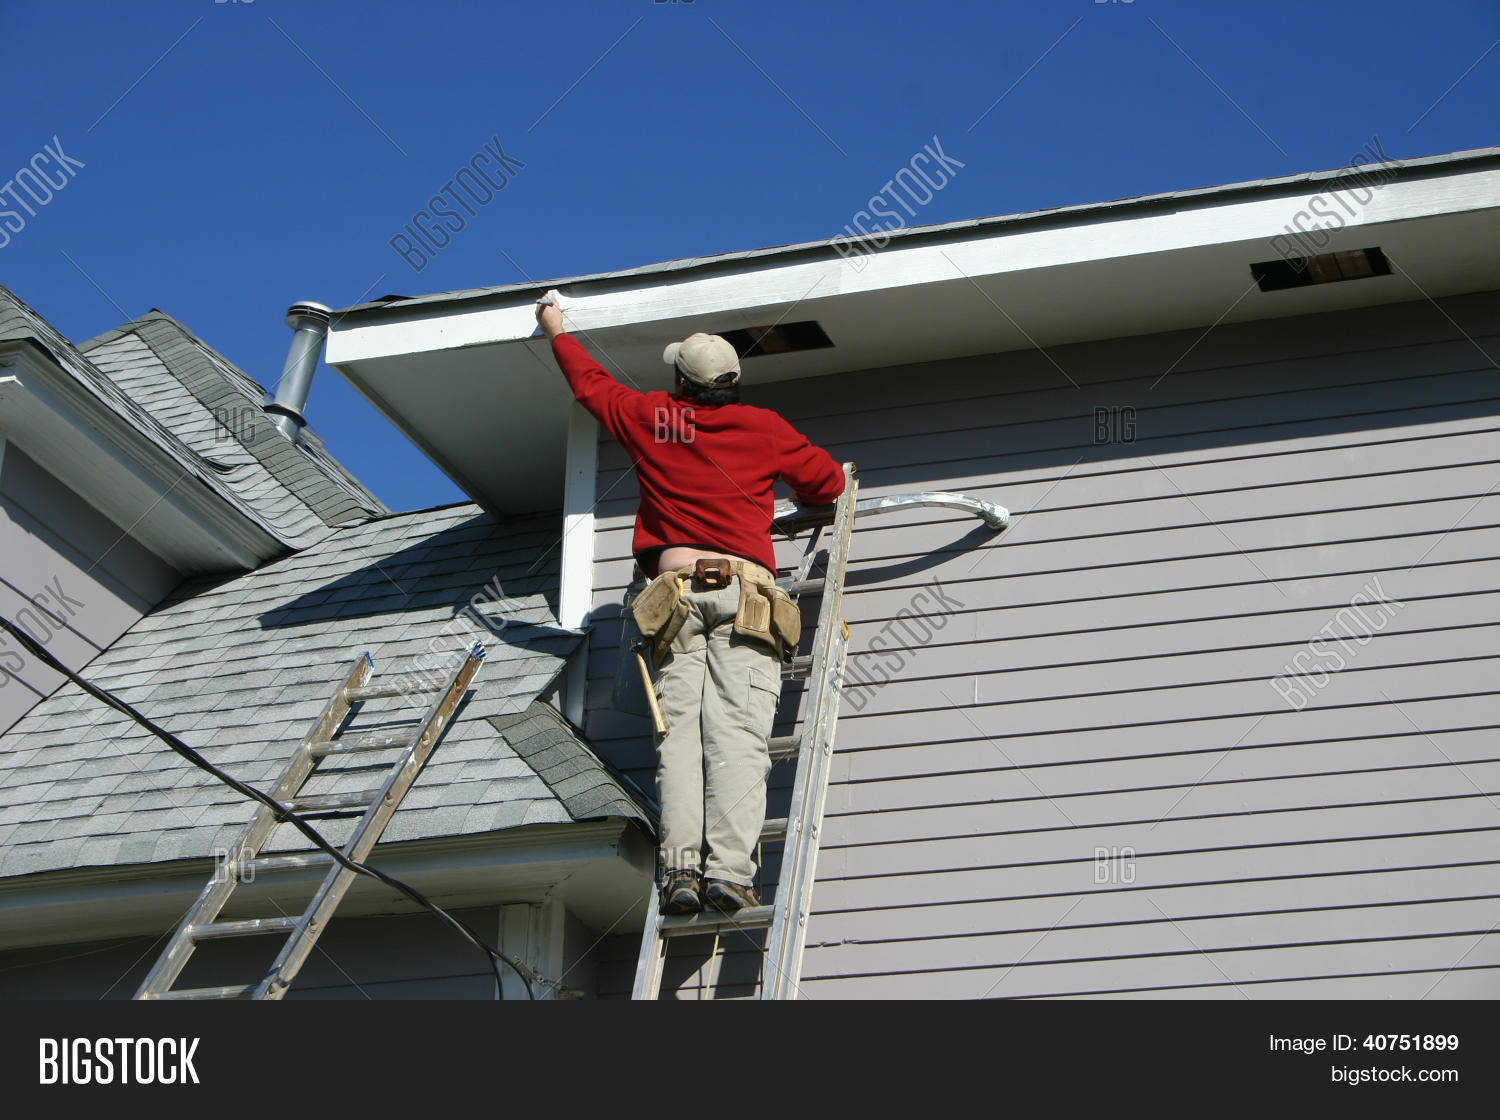 How to paint fascia boards - Painting The Fascia Board